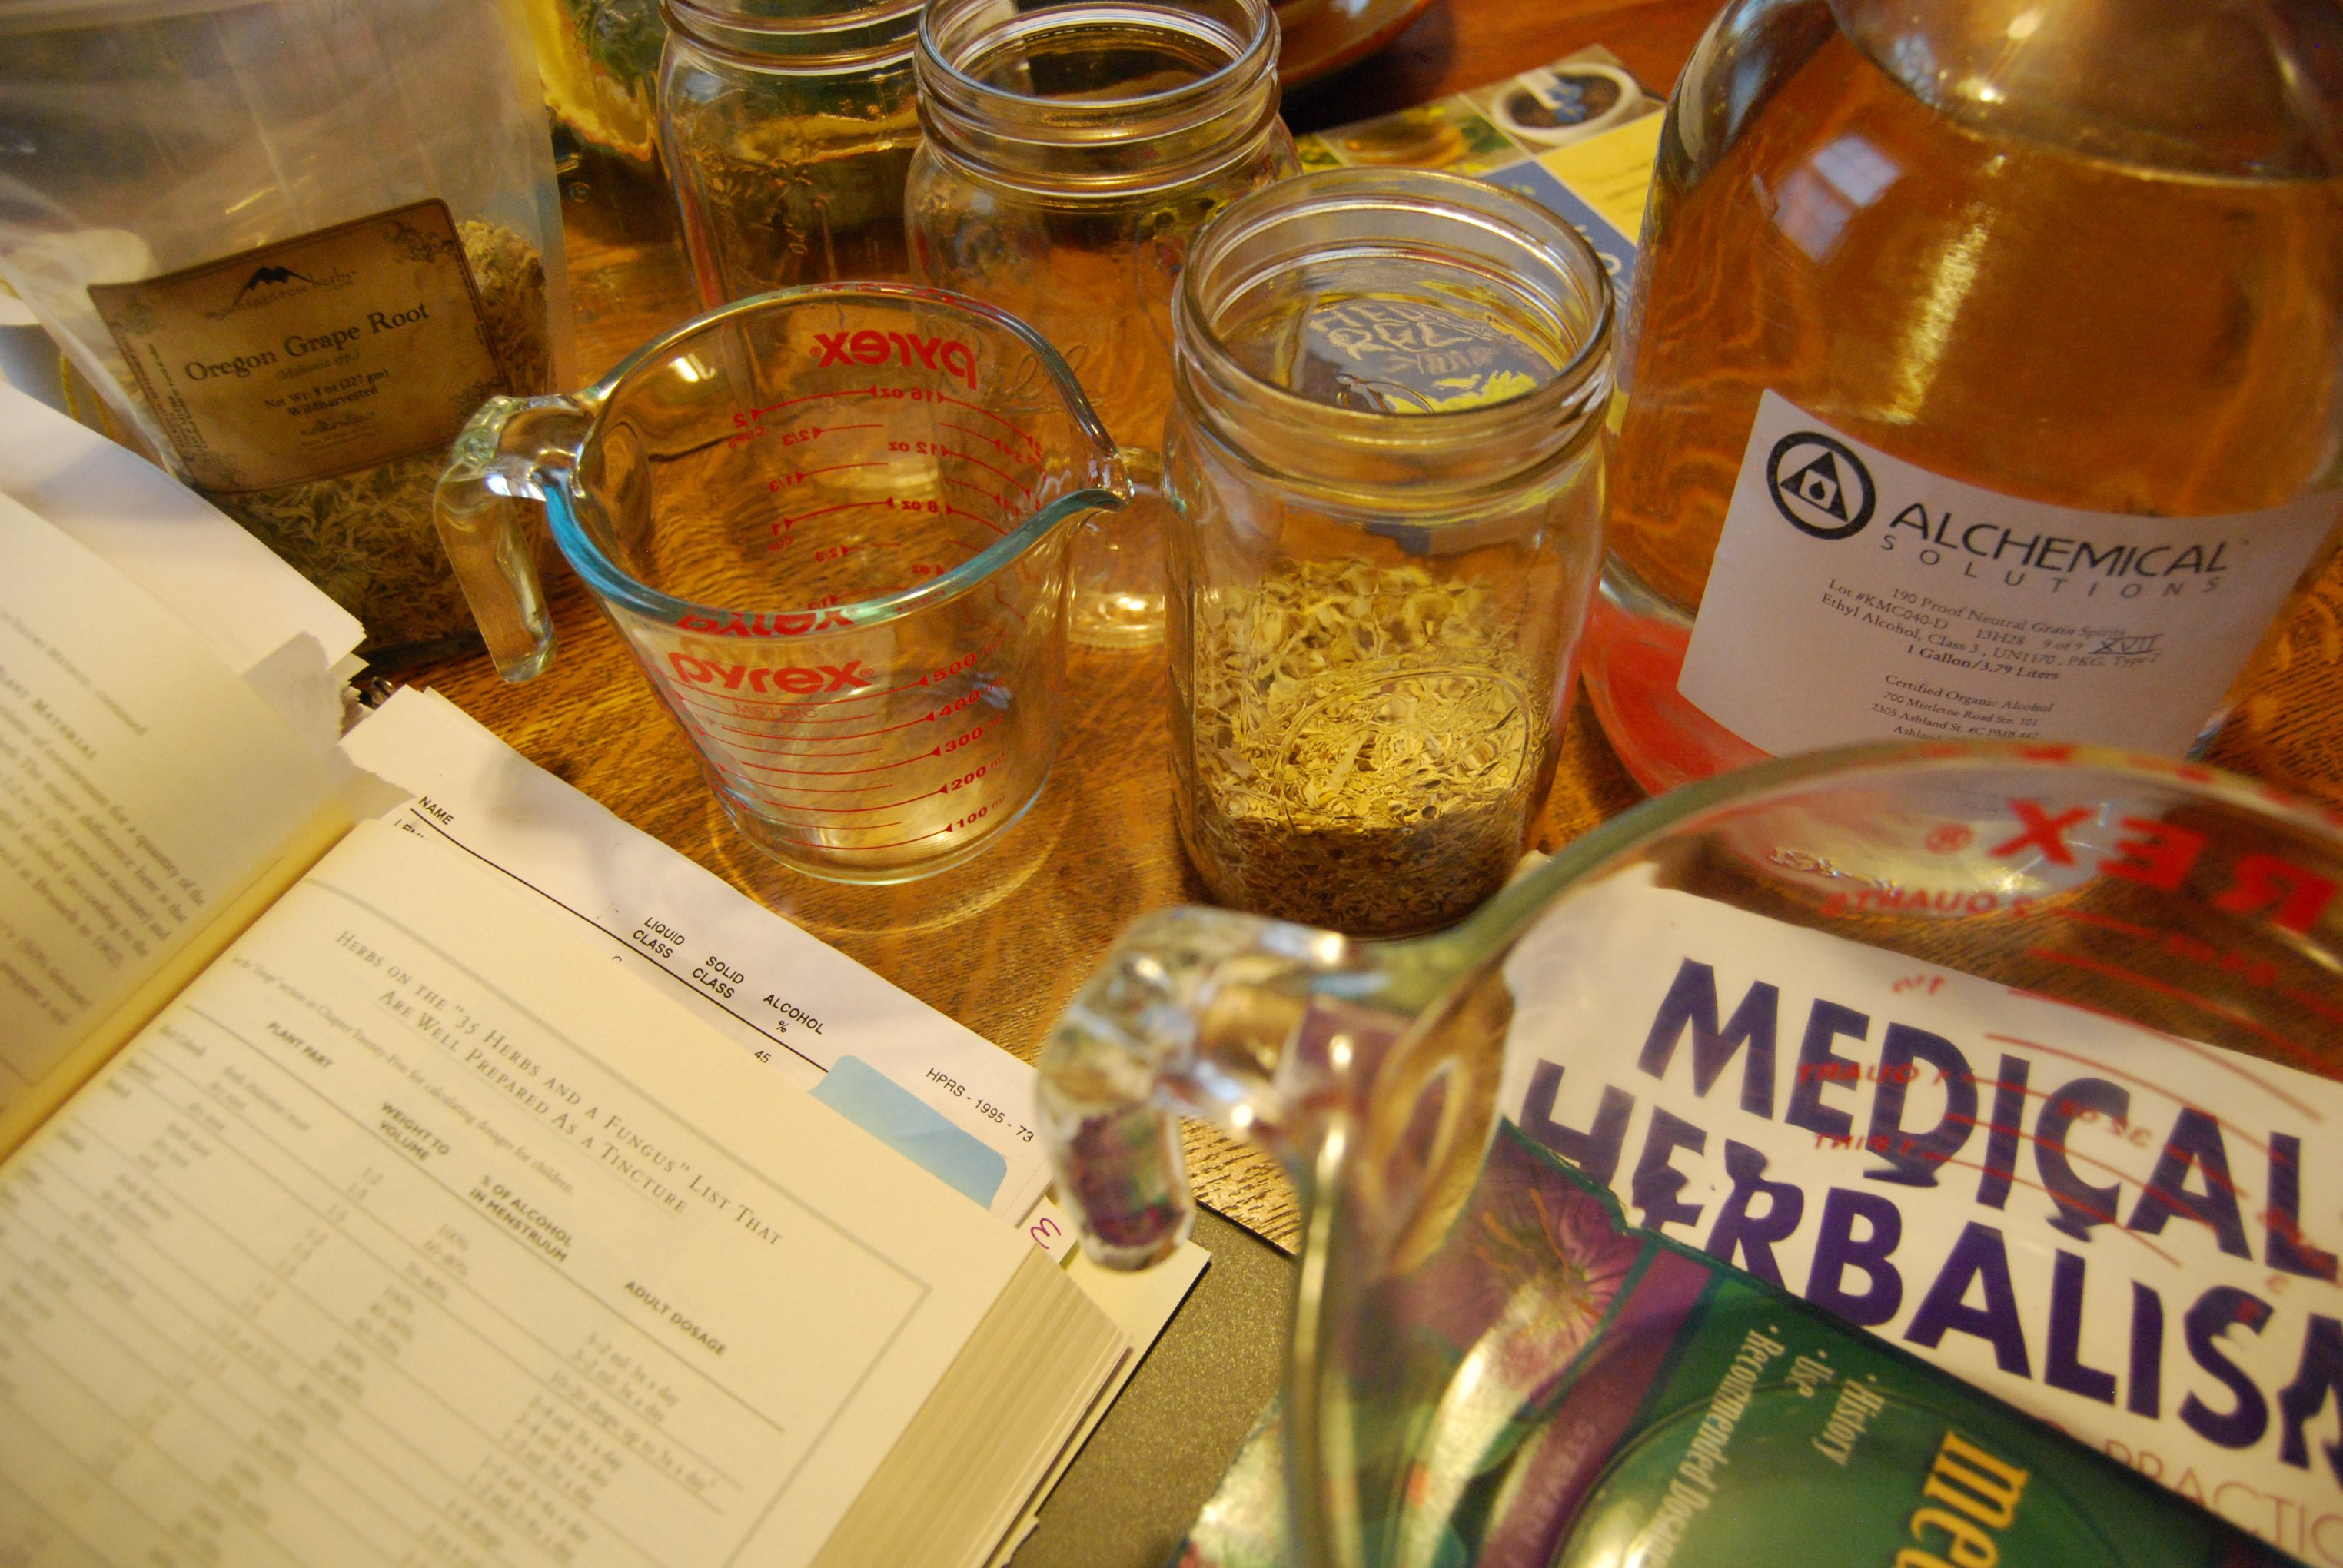 Private Instruction: The Art of Herbalism